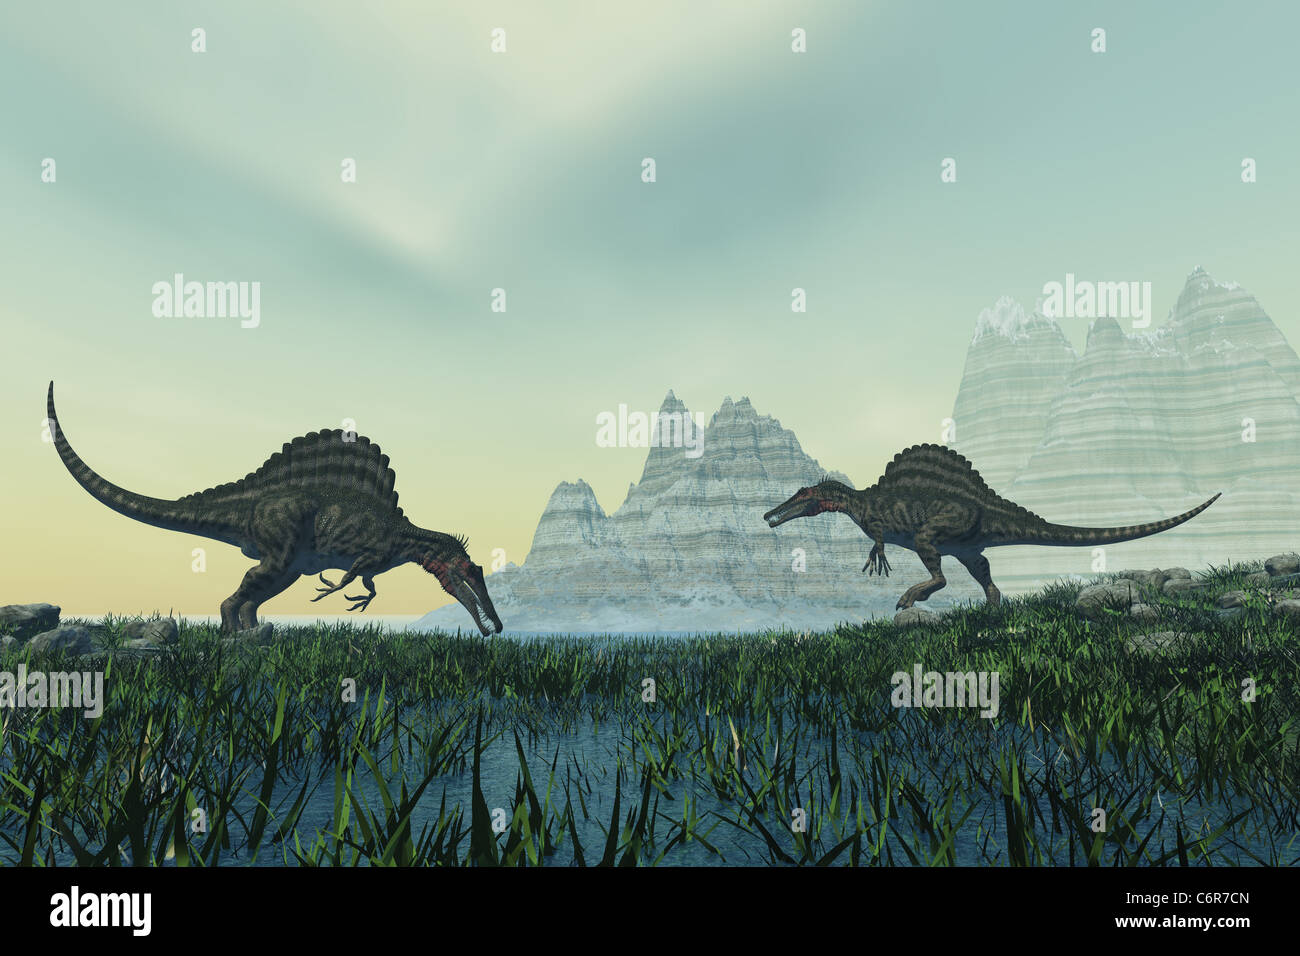 Two Spinosaurus dinosaurs drink from a marsh area in prehistoric times. - Stock Image